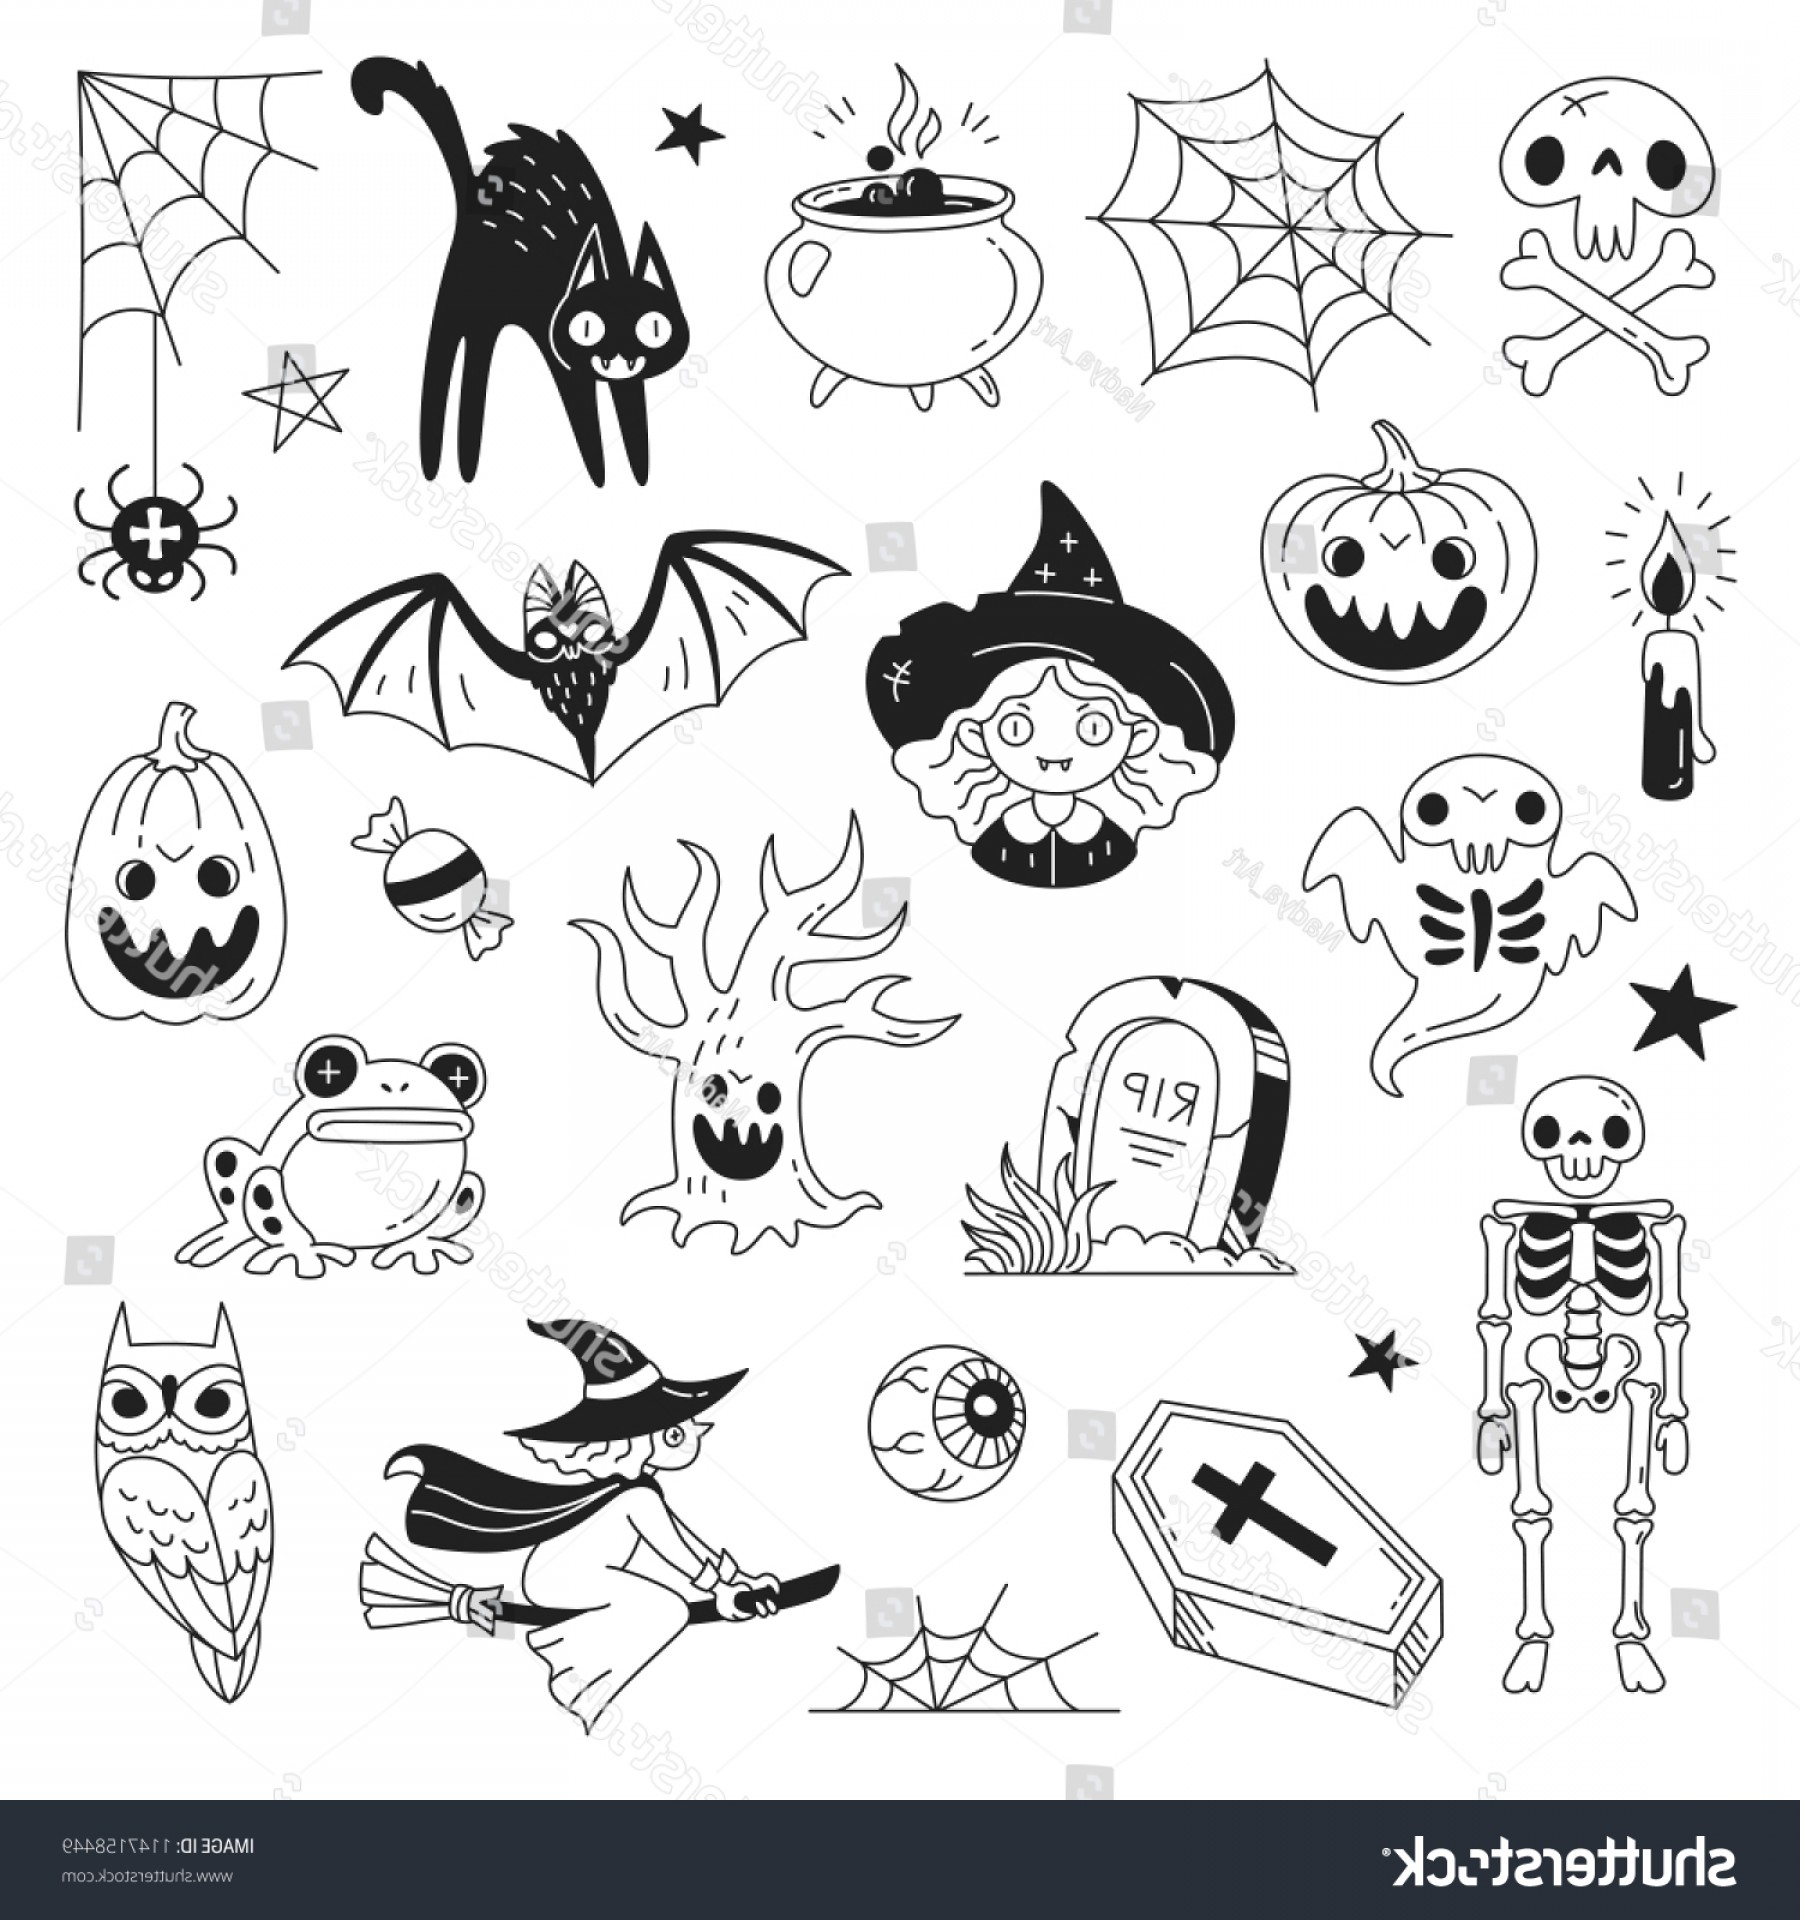 Funny Black And White Vector: Halloween Doodle Collection Vector Illustration Funny